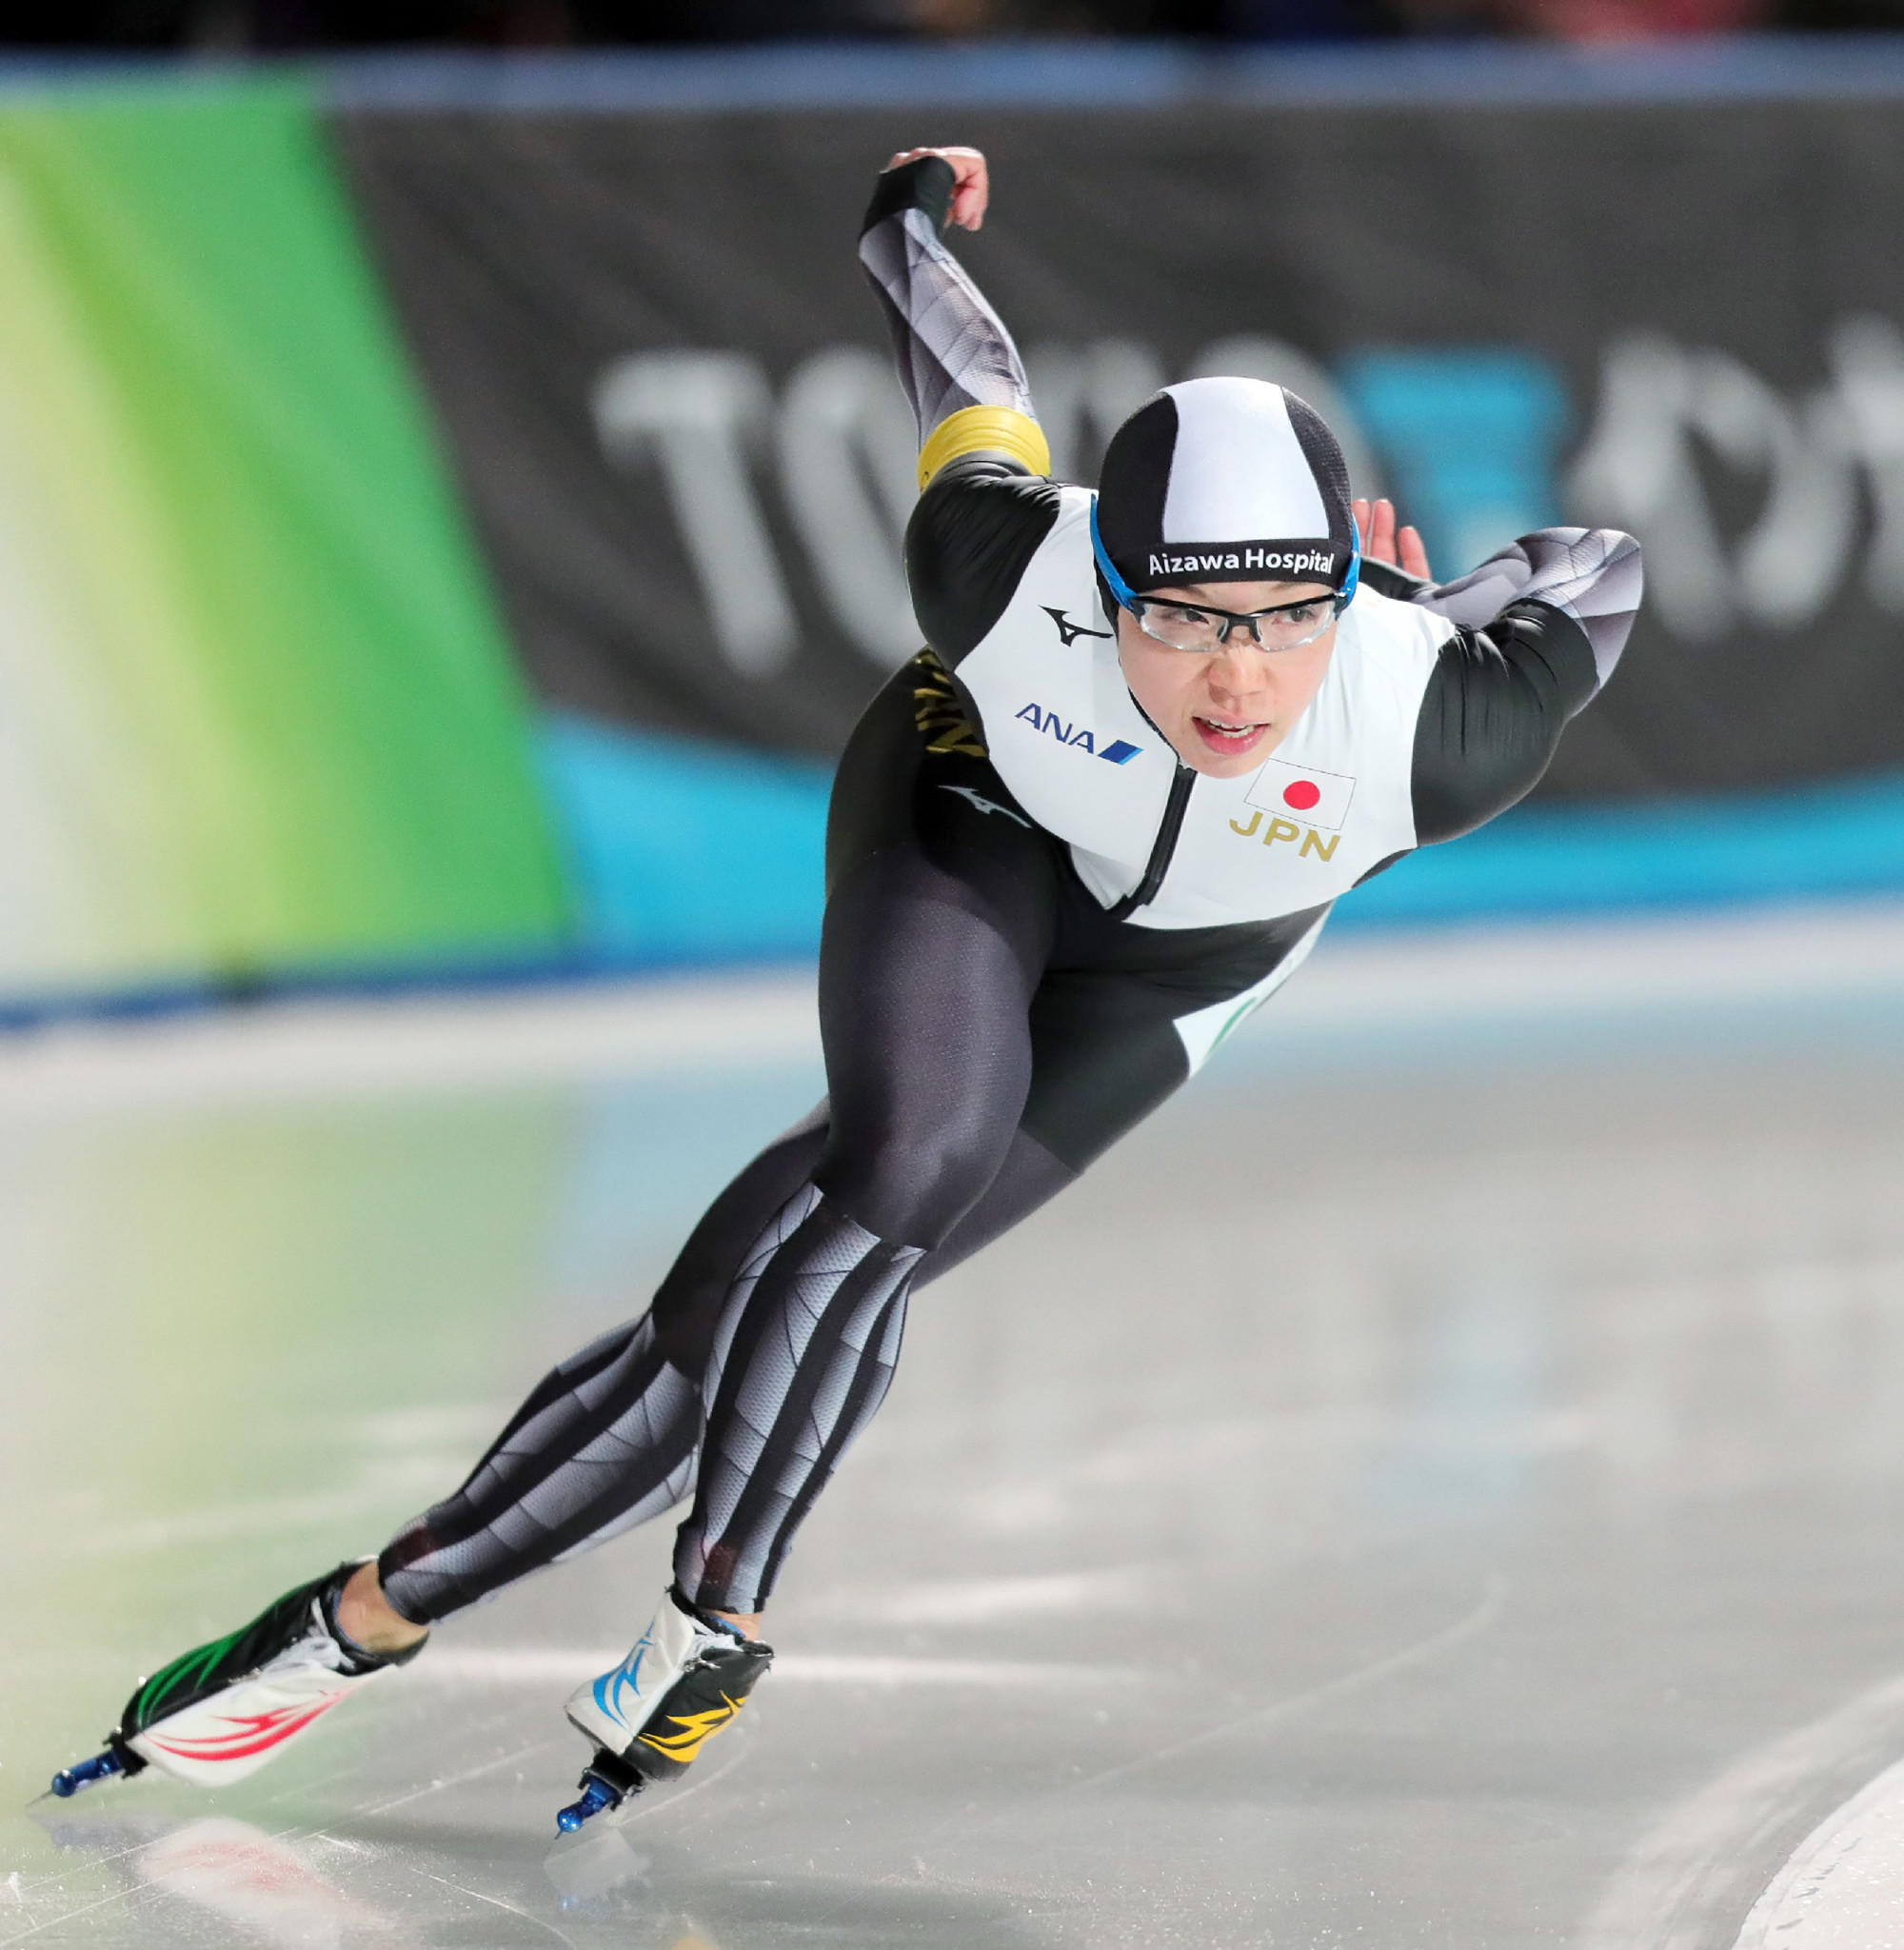 Olympic champion Nao Kodaira is not competing in Poland this weekend ©Getty Images